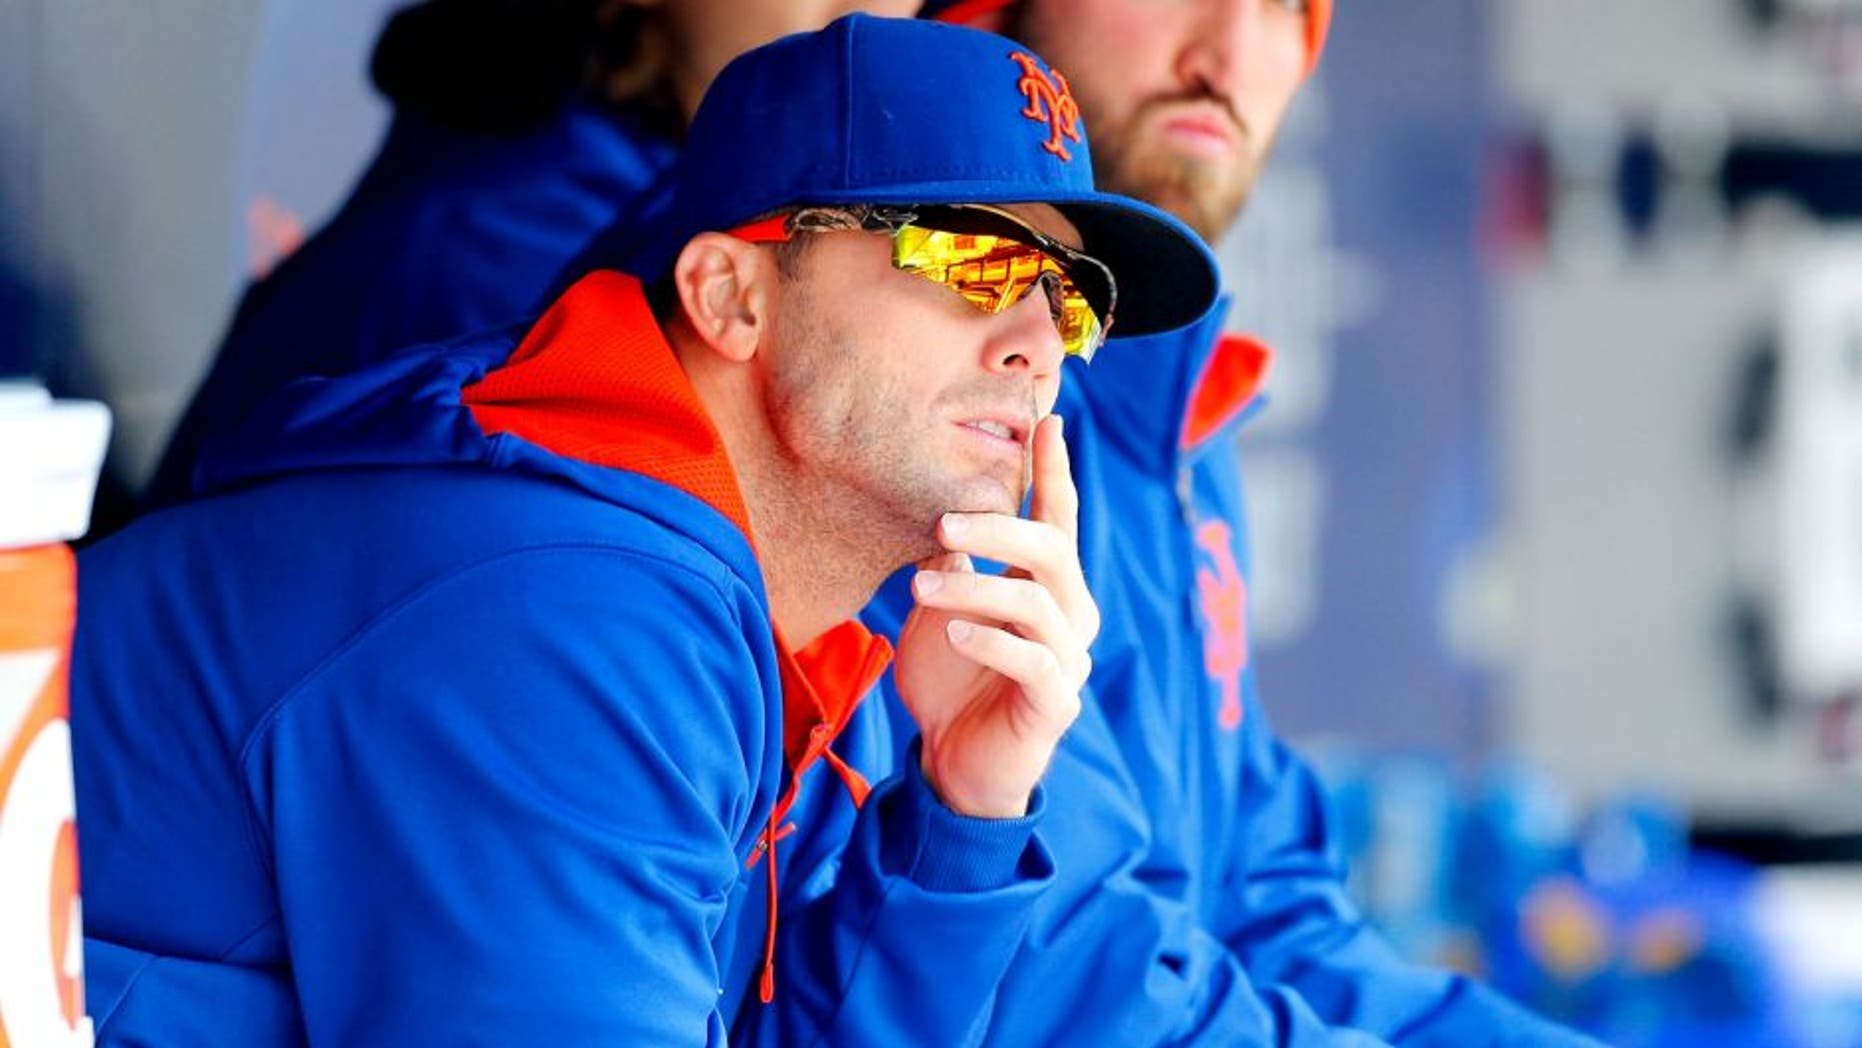 NEW YORK, NY - APRIL 23: David Wright #5 of the New York Mets looks on against the Atlanta Braves at Citi Field on April 23, 2015 in the Flushing neighborhood of the Queens borough of New York City. The Mets defeated the Braves 6-3. (Photo by Jim McIsaac/Getty Images)